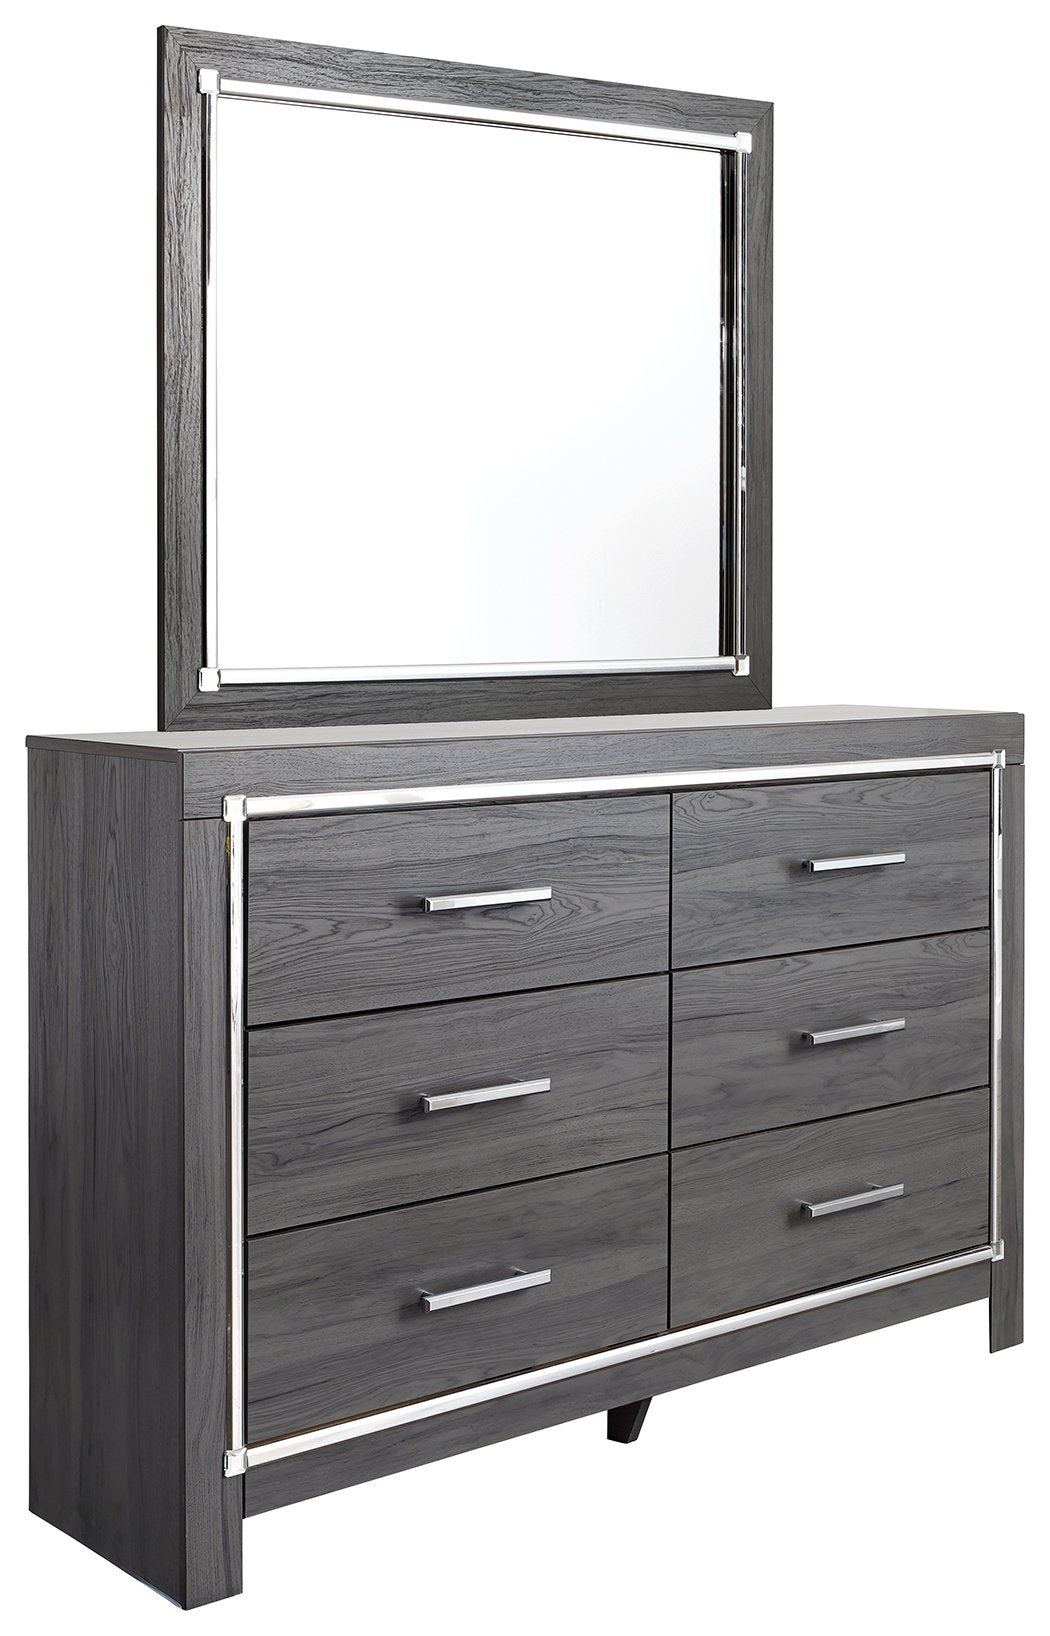 Lodanna Signature Design by Ashley Dresser and Mirror